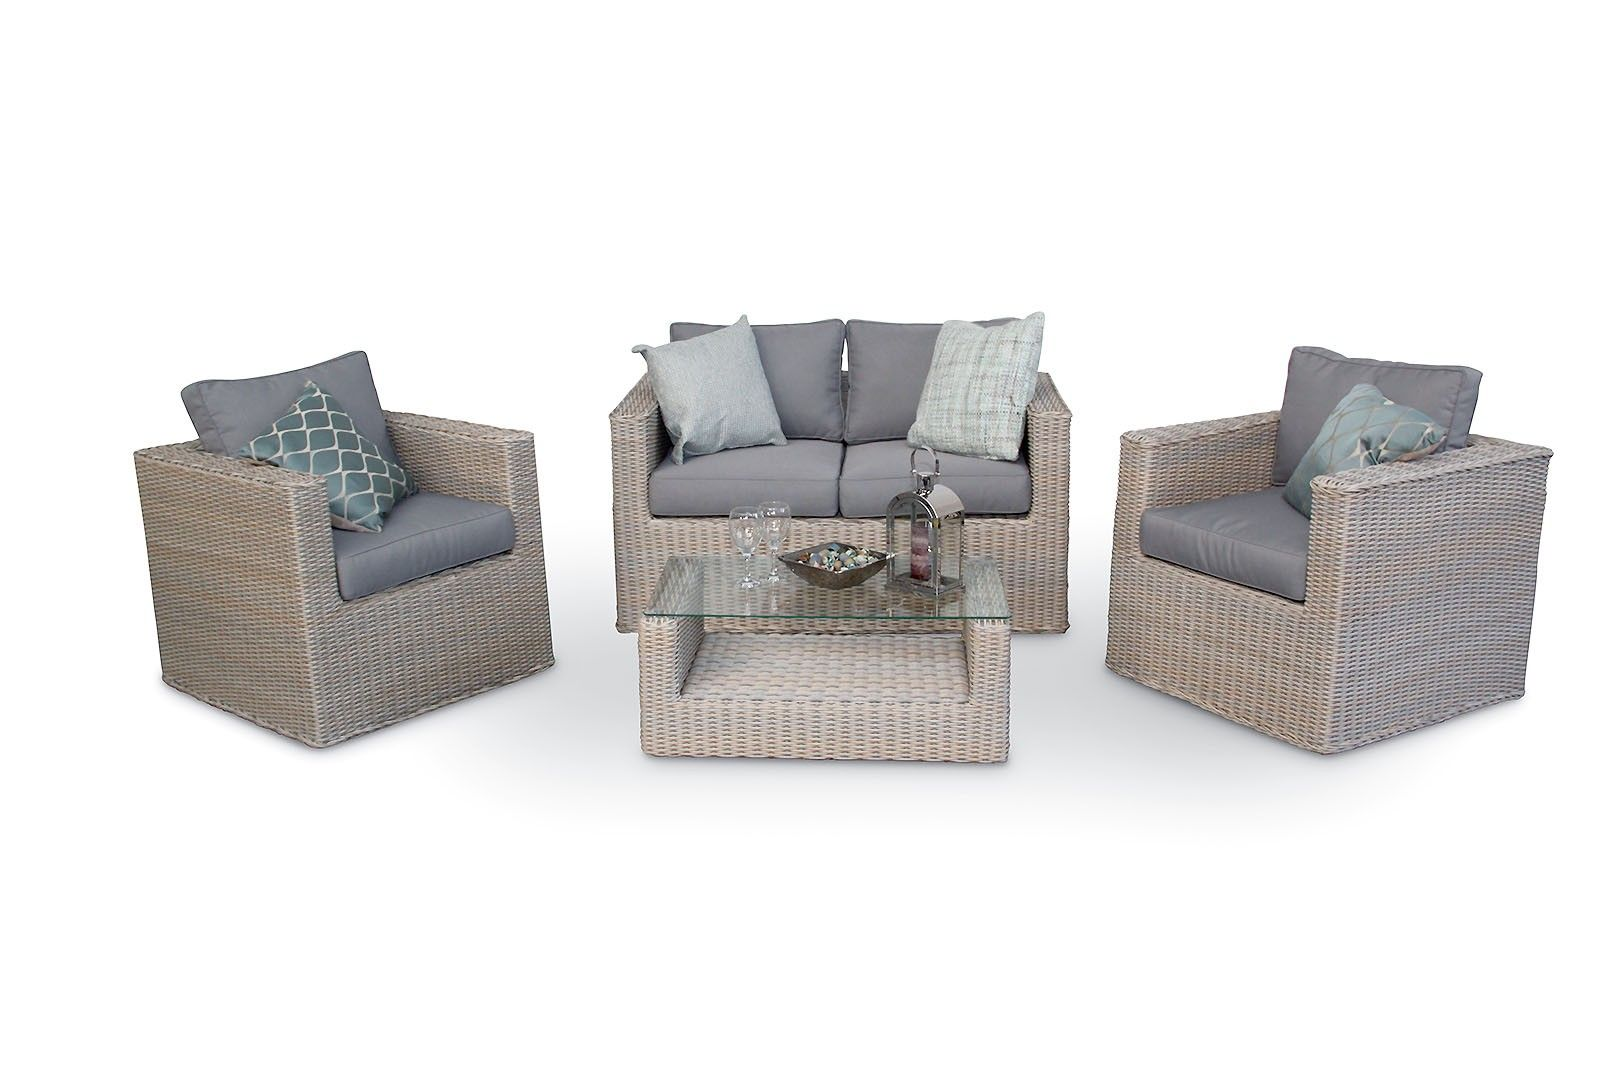 42b930eab82d5 Bahia 4PC Rattan Garden Sofa Set - Champagne Grey. This maintenance free  lounge set is ideal for those looking for a compact, yet luxurious natural  look. ...